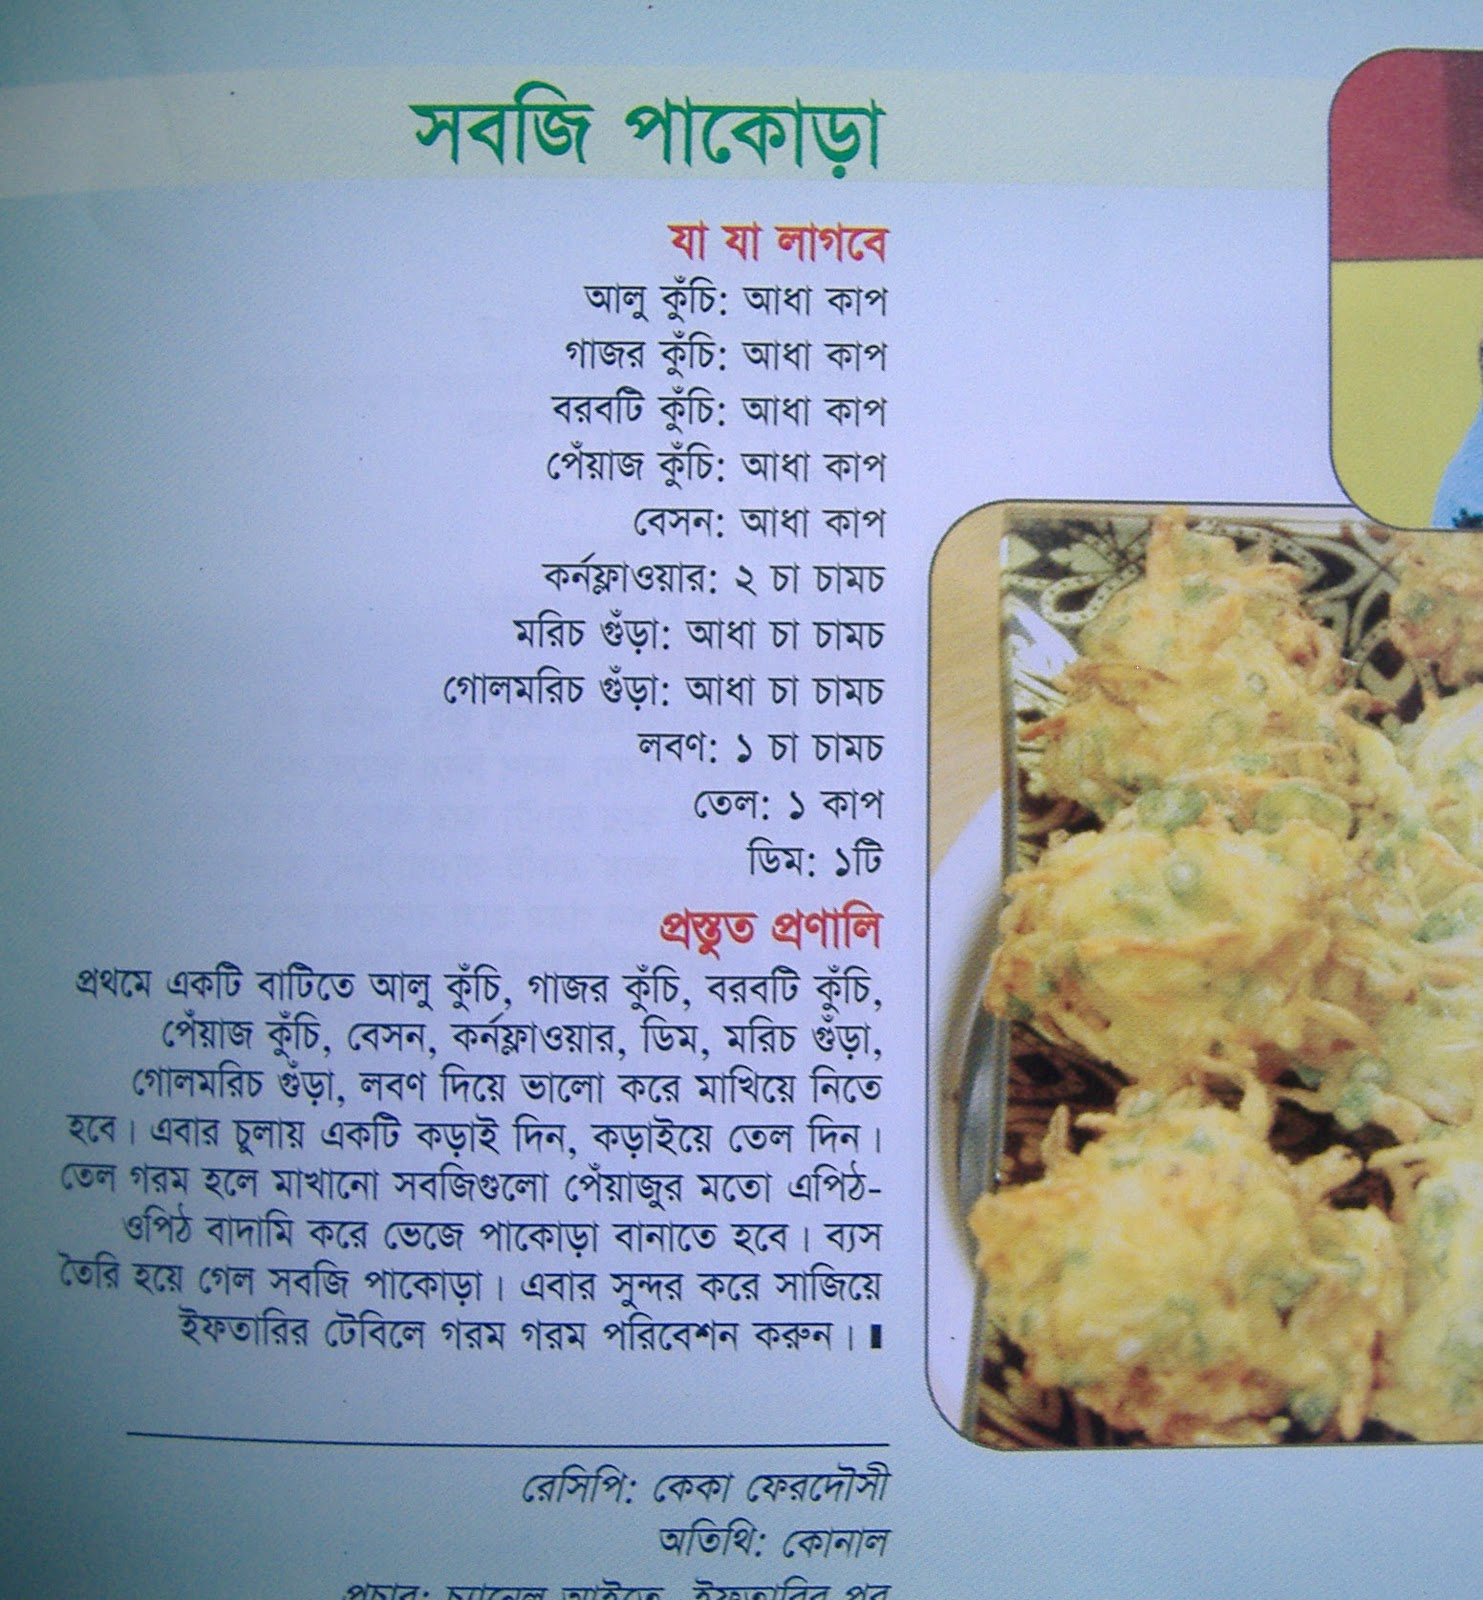 Vegetable pakora bengali recipes bengali recipes forumfinder Choice Image